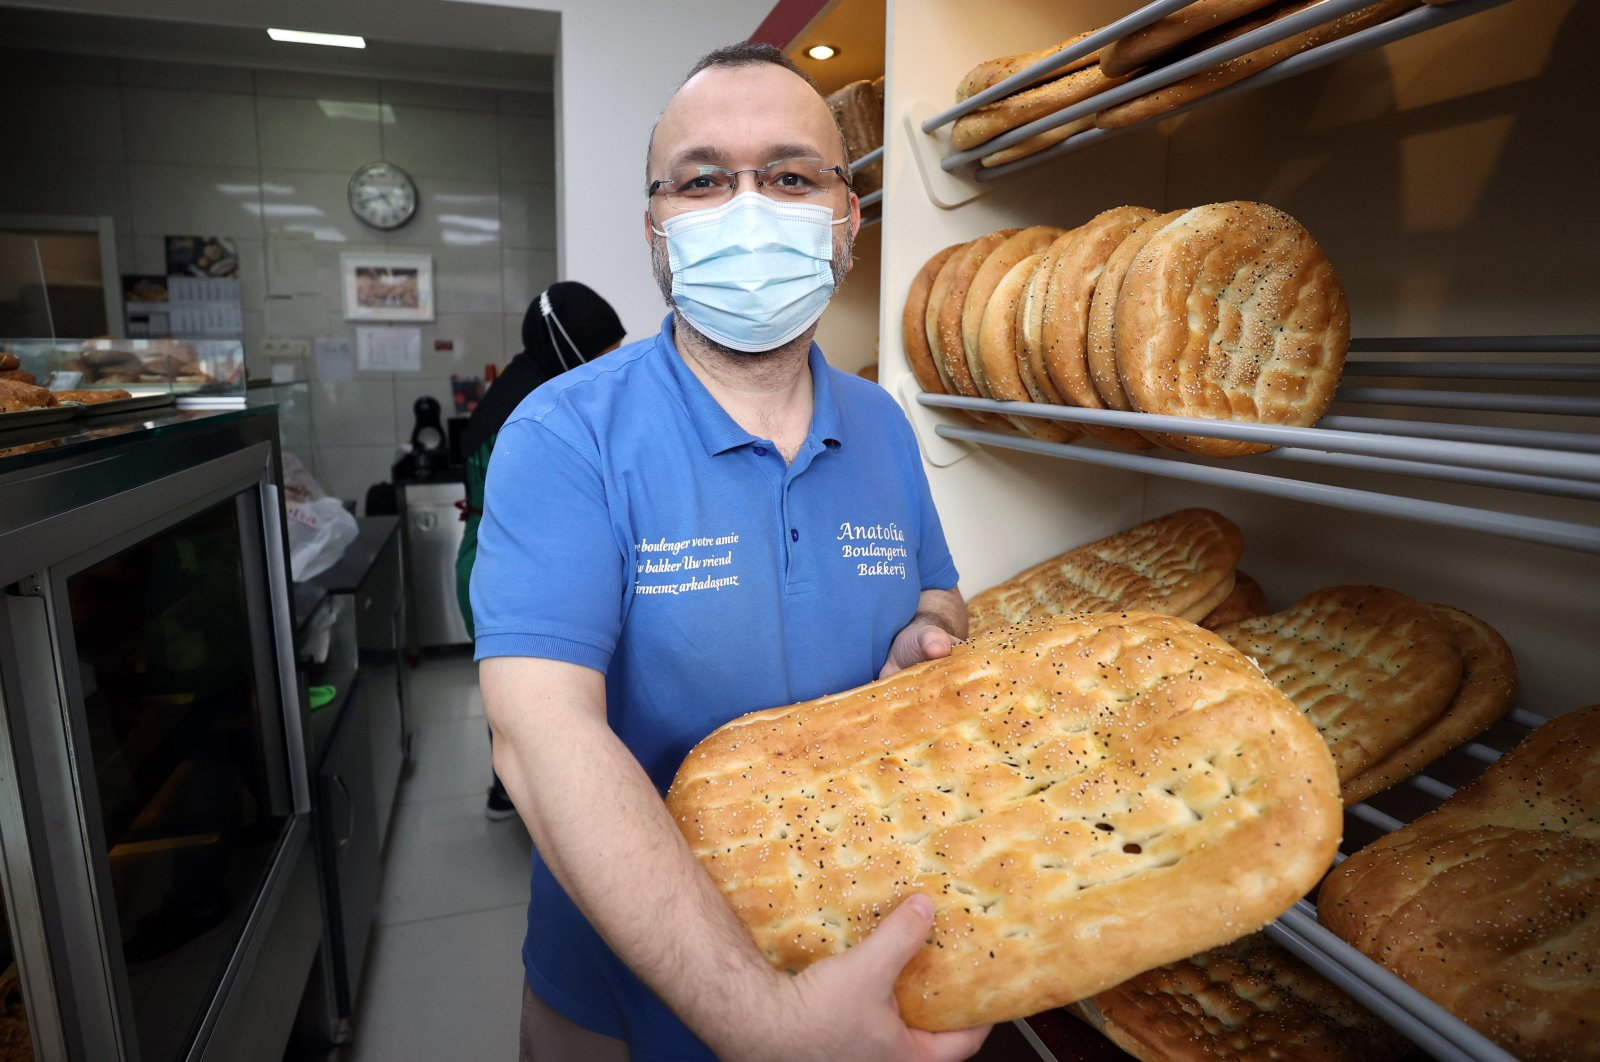 Turkish bakery owner Seçkin Dikmen shows off his bread at his shop in Brussels, Belgium, April 21, 2021. (AA Photo)